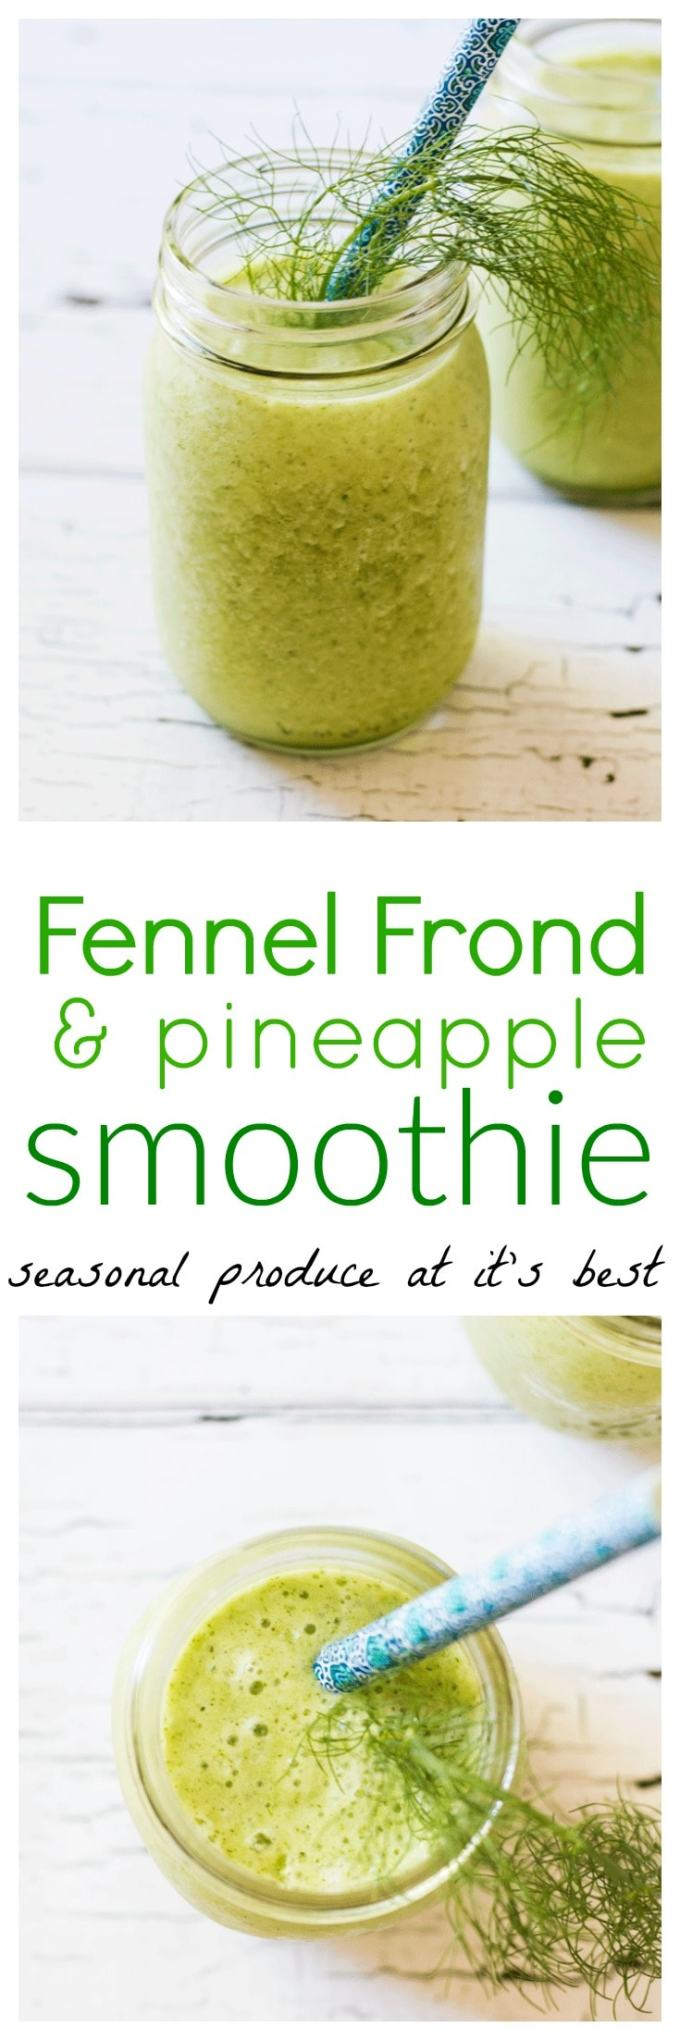 Hang onto those amazing and fragrant fennel fronds to whip up these delightful and refreshing fennel frond and pineapple smoothies. Pure seasonal indulgence